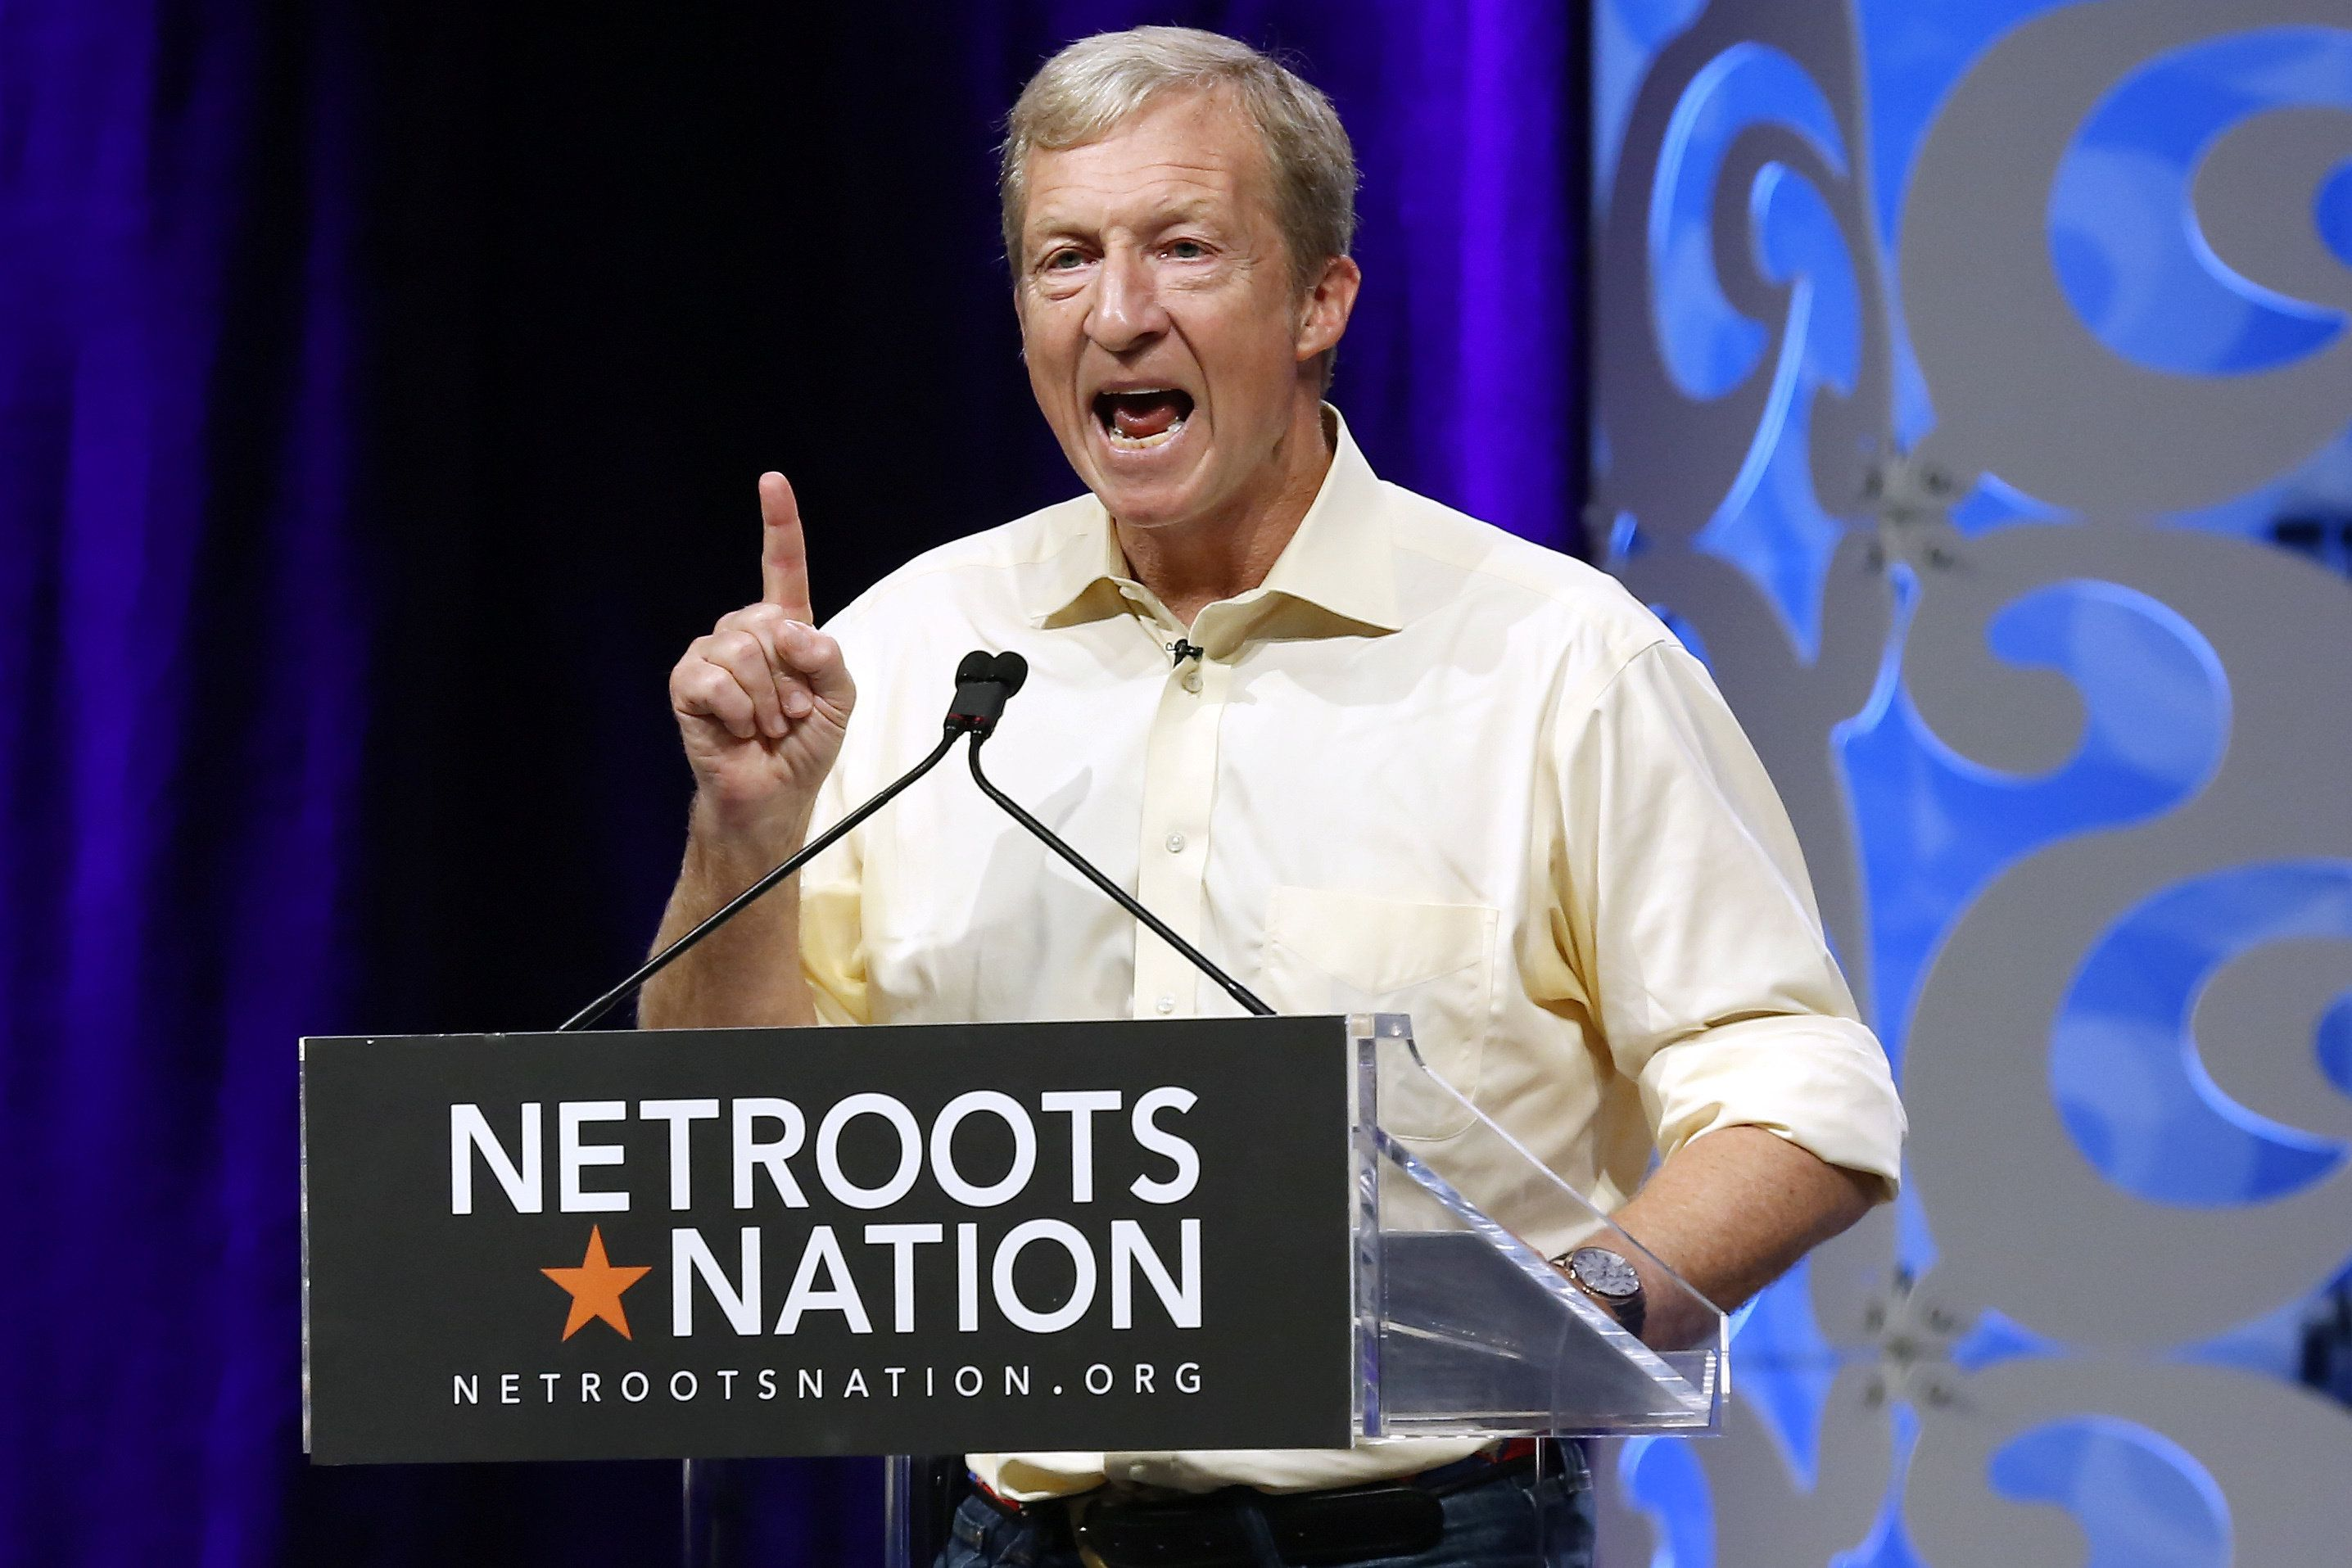 Tom Steyer speaks at the Netroots Nation conference in New Orleans Louisiana on Thursday Aug. 2 2018. The liberal donor